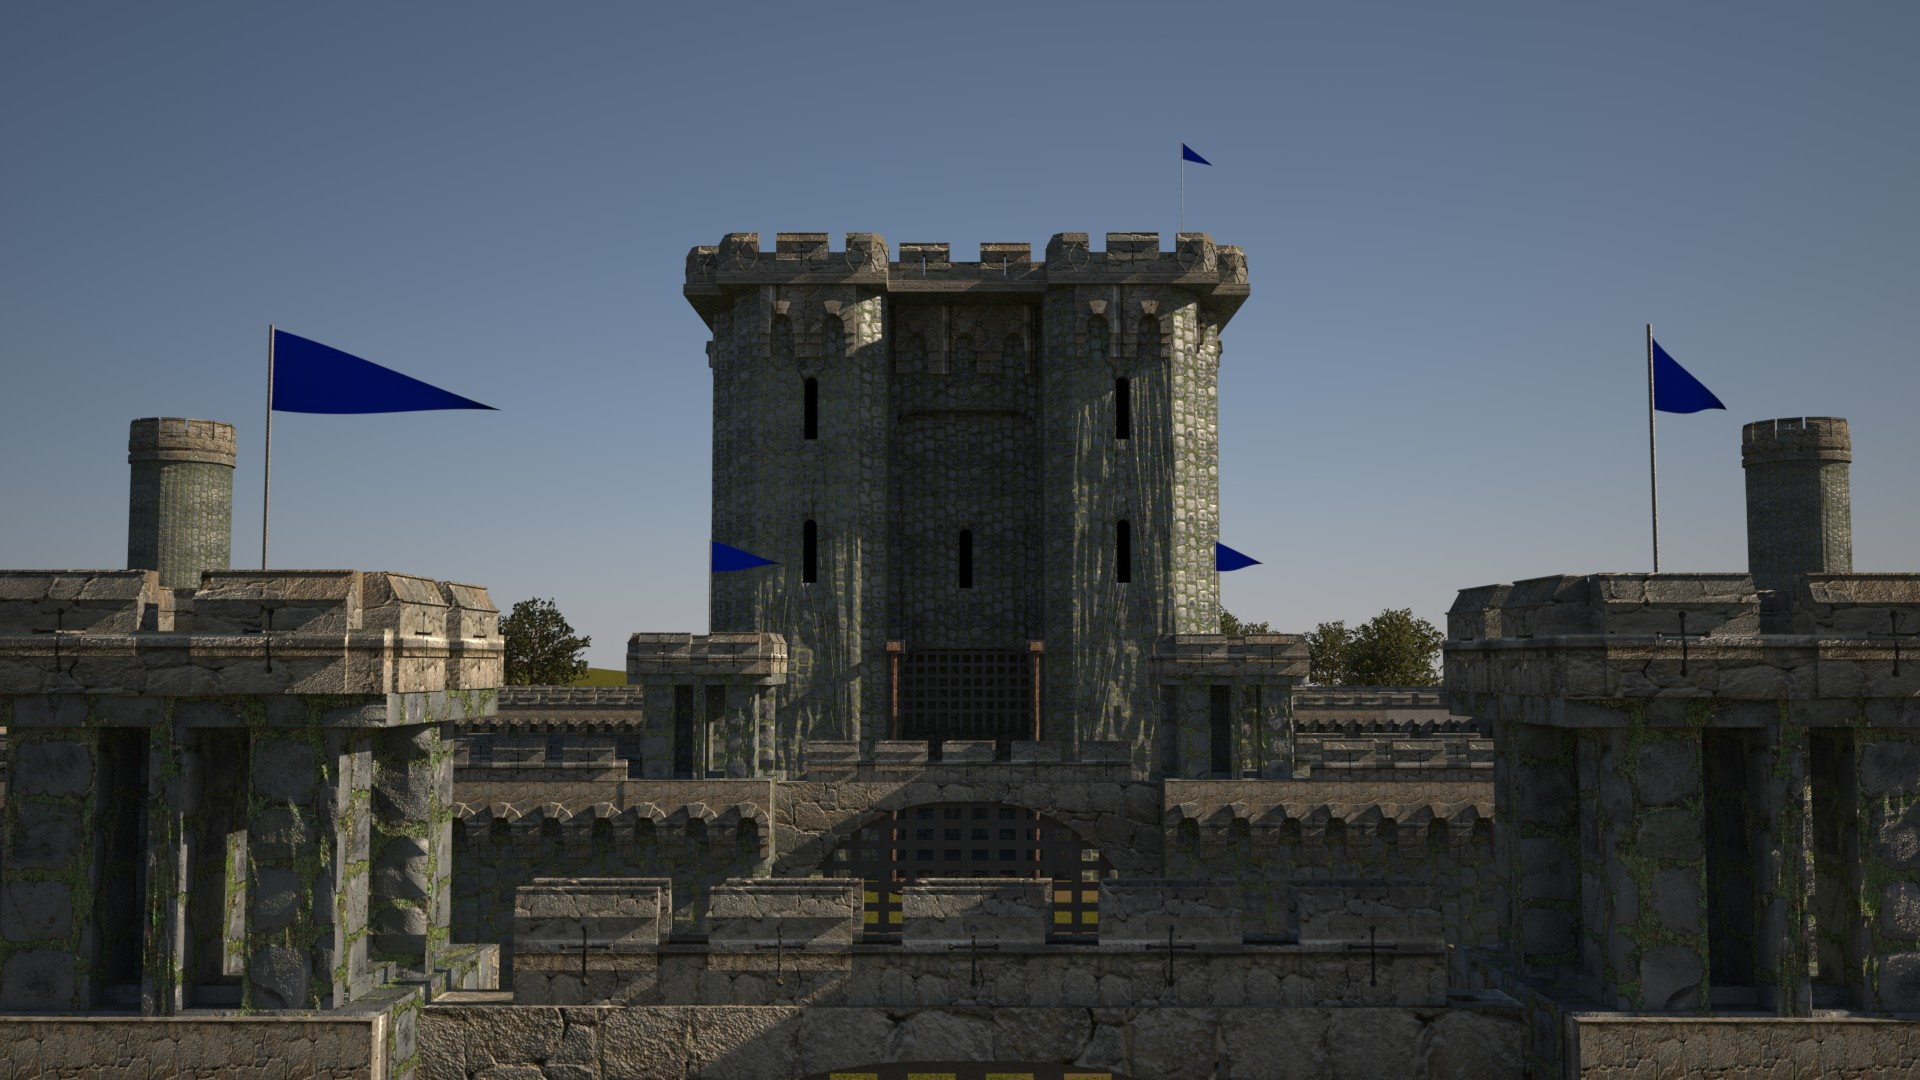 age-of-empires-2-render-b